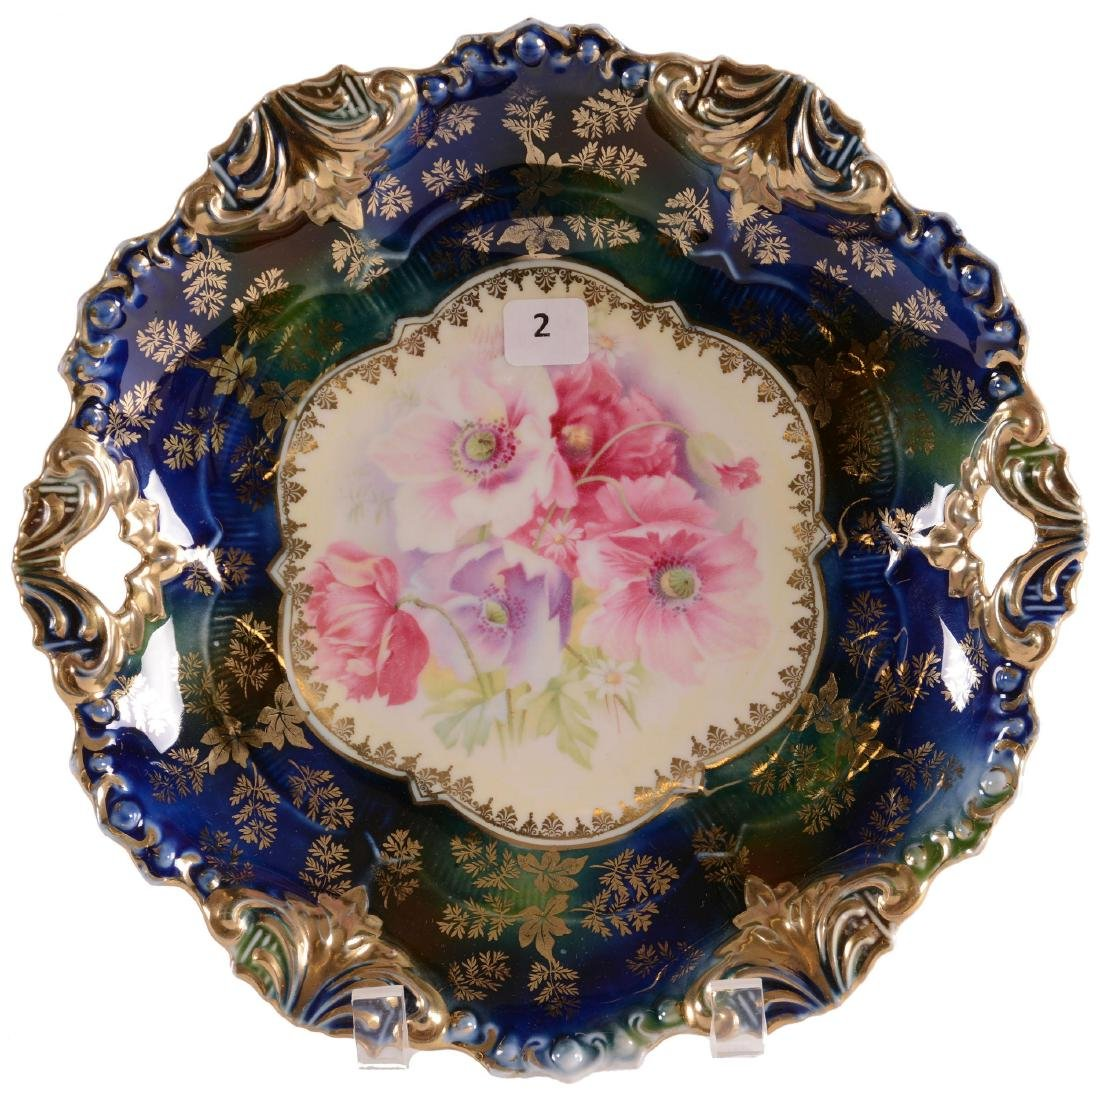 Cake Plate - Marked R.S. Prussia